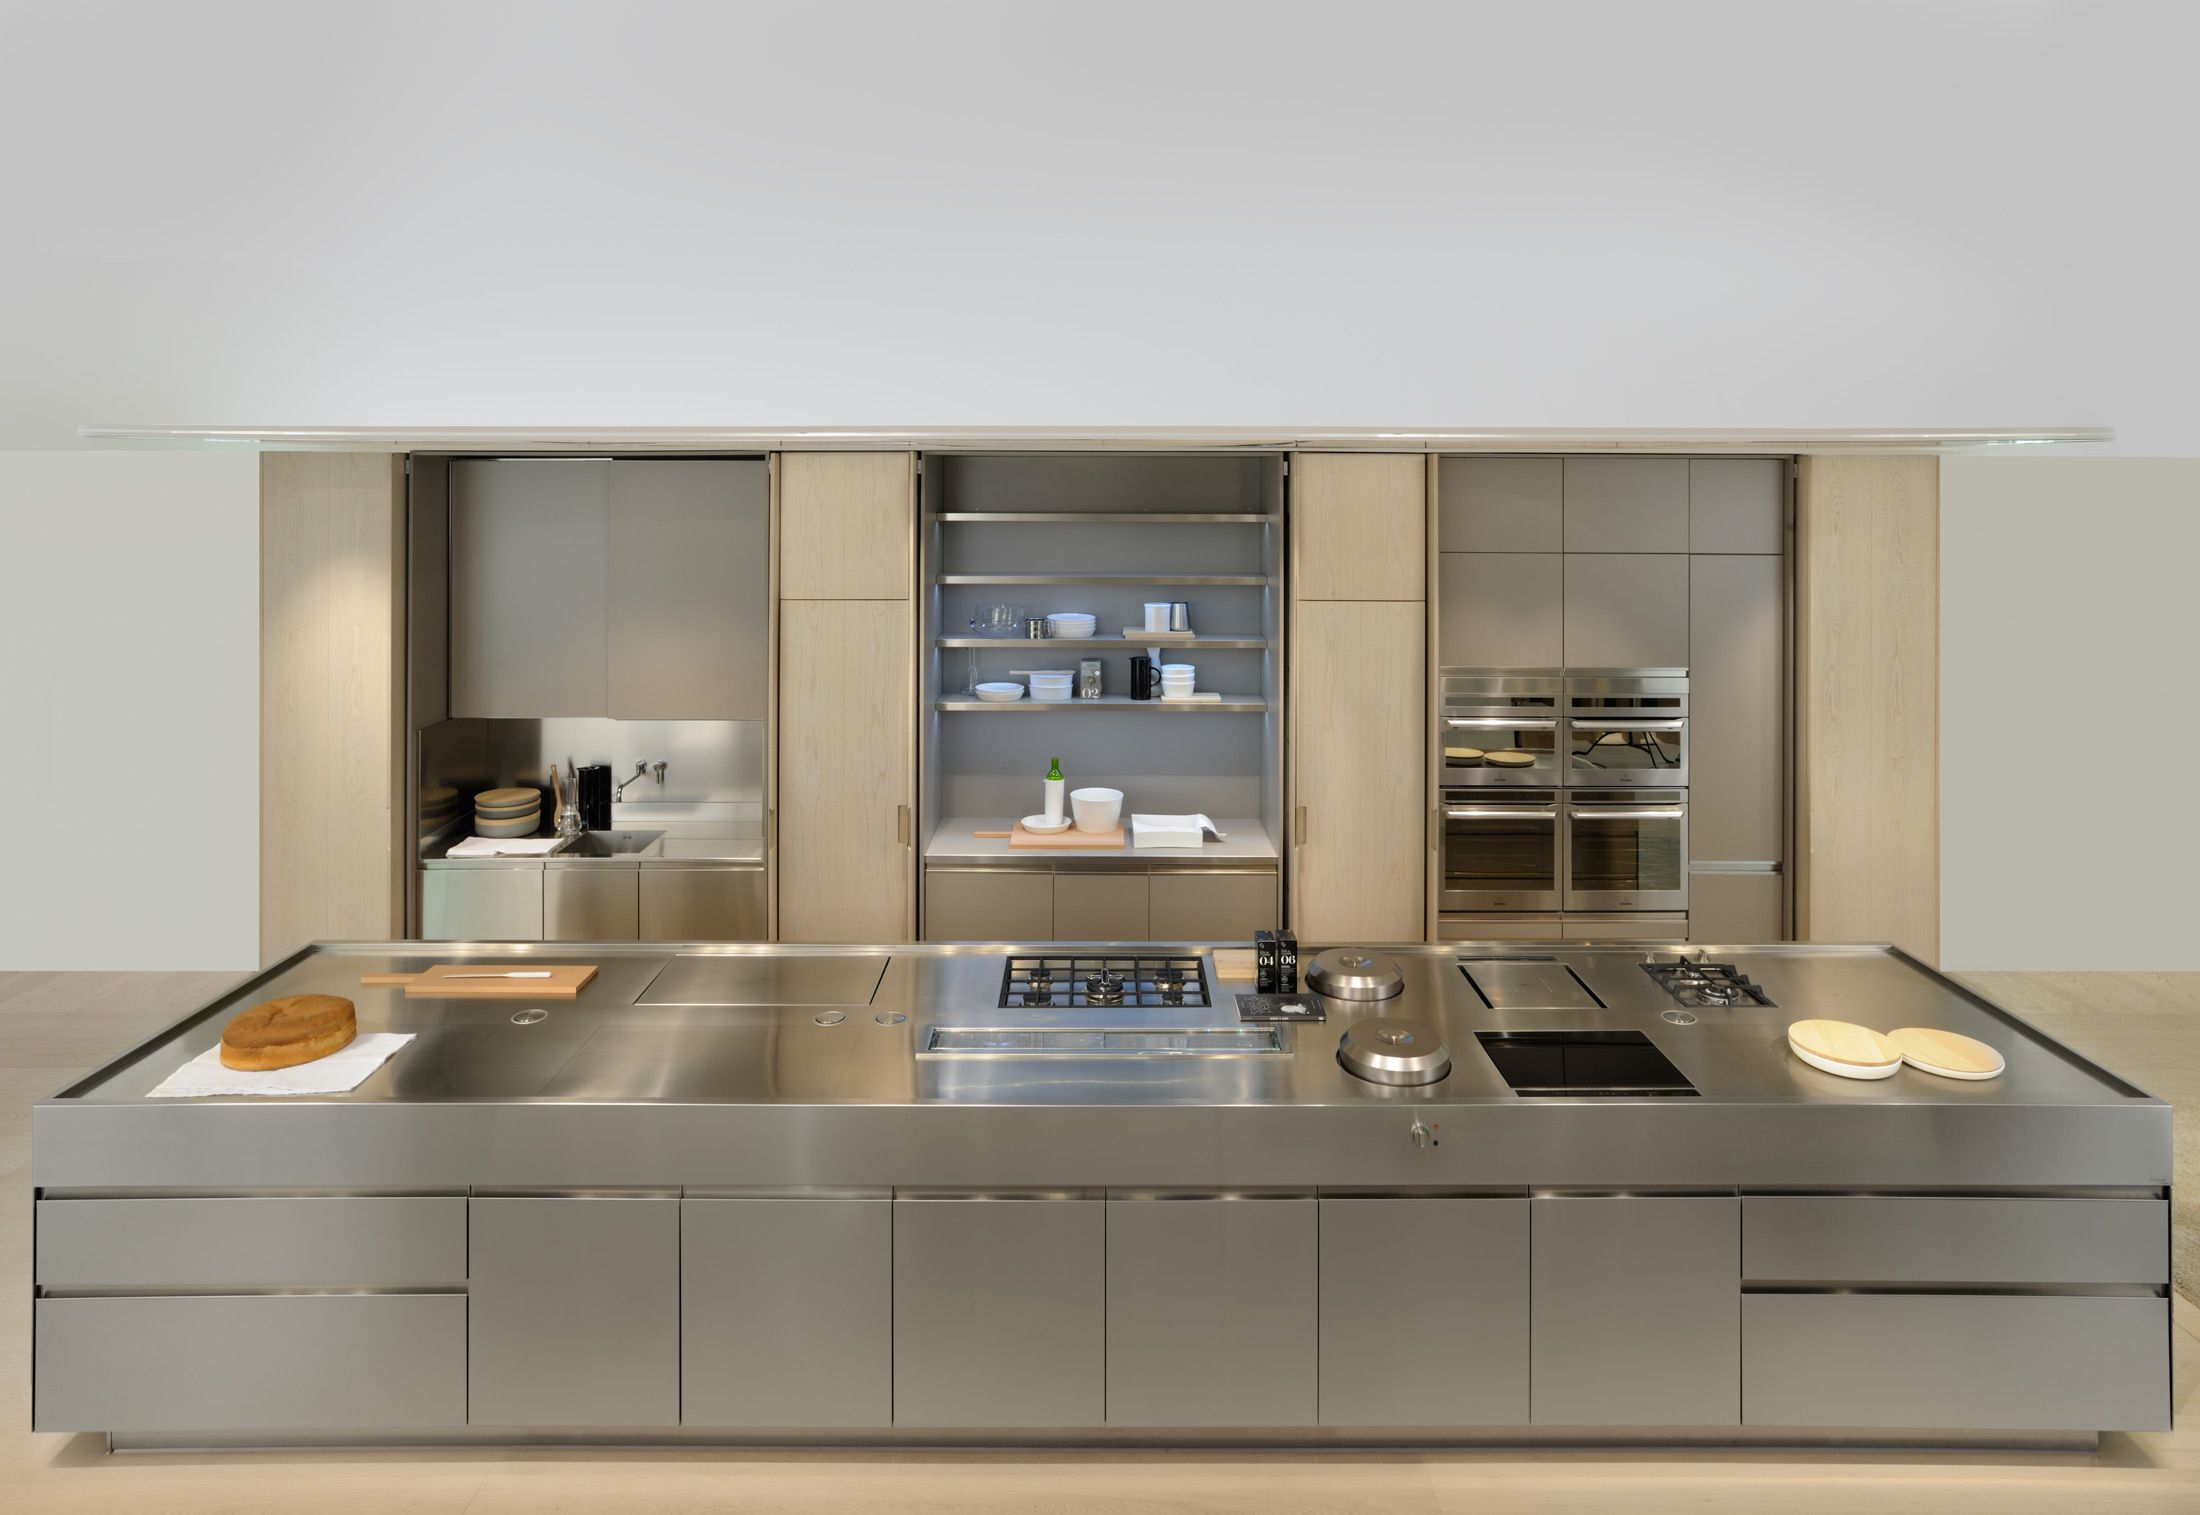 Arclinea convivium by designer Antonio Citterio | kitchen ...